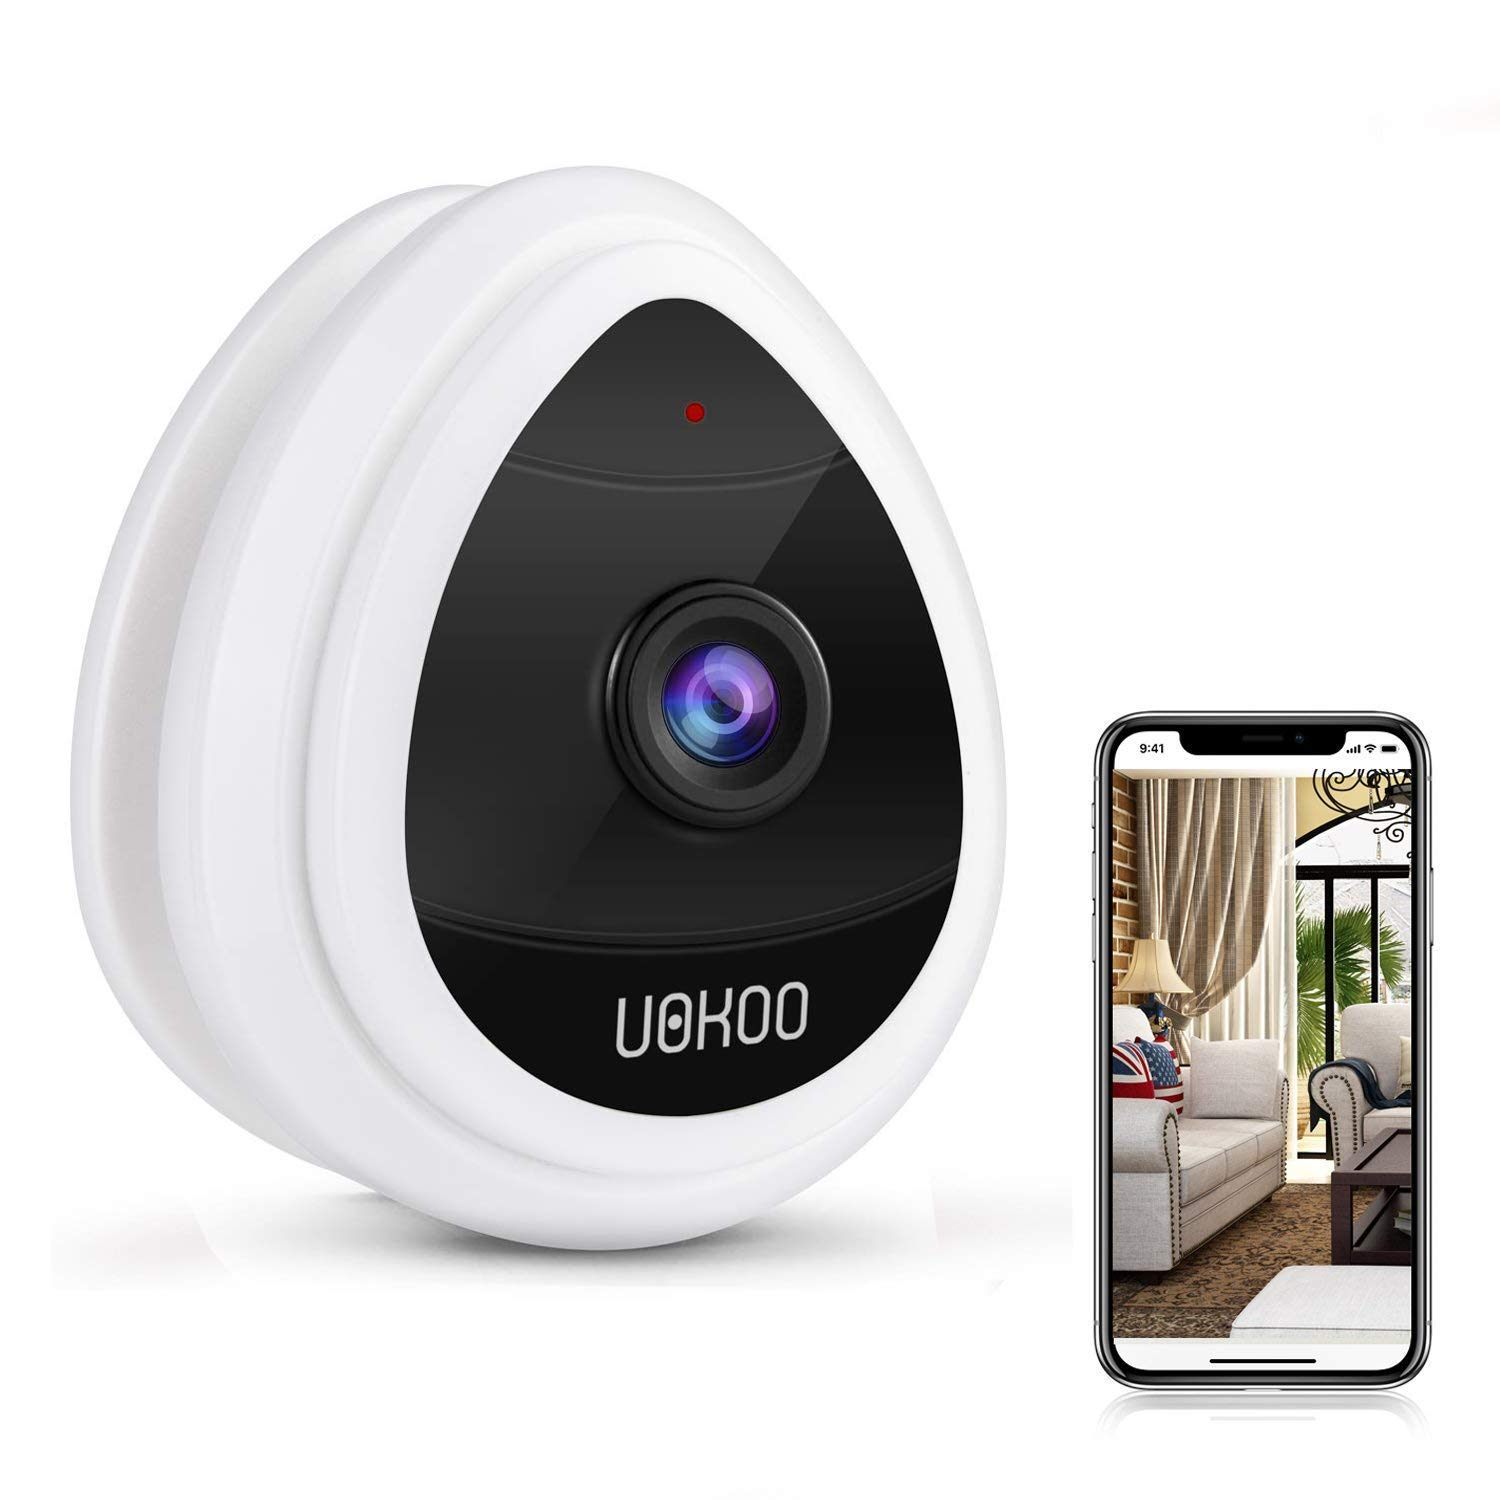 Mini IP Camera, WiFi Wireless Security Smart IP Camera Surveillance System Remote Monitoring with Motion Email Alert/Remote Monitoring for Pet Baby Elder Pet Nanny Monitor